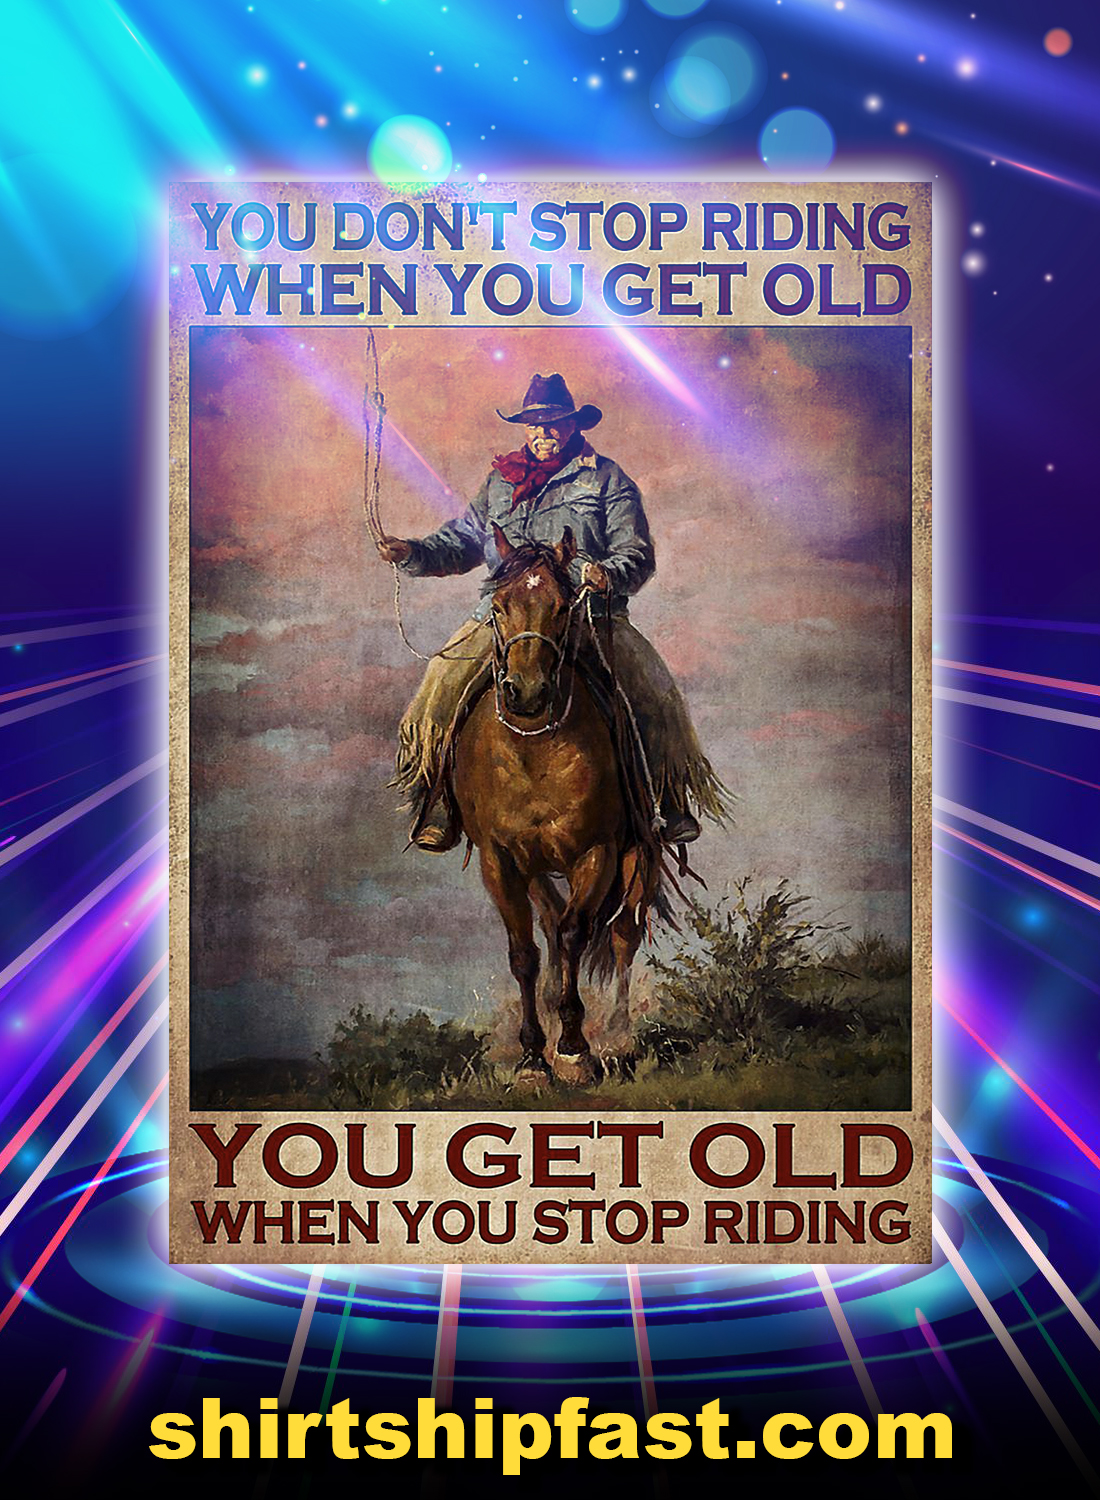 Rodeo old man You don't stop riding when you get old poster - A4